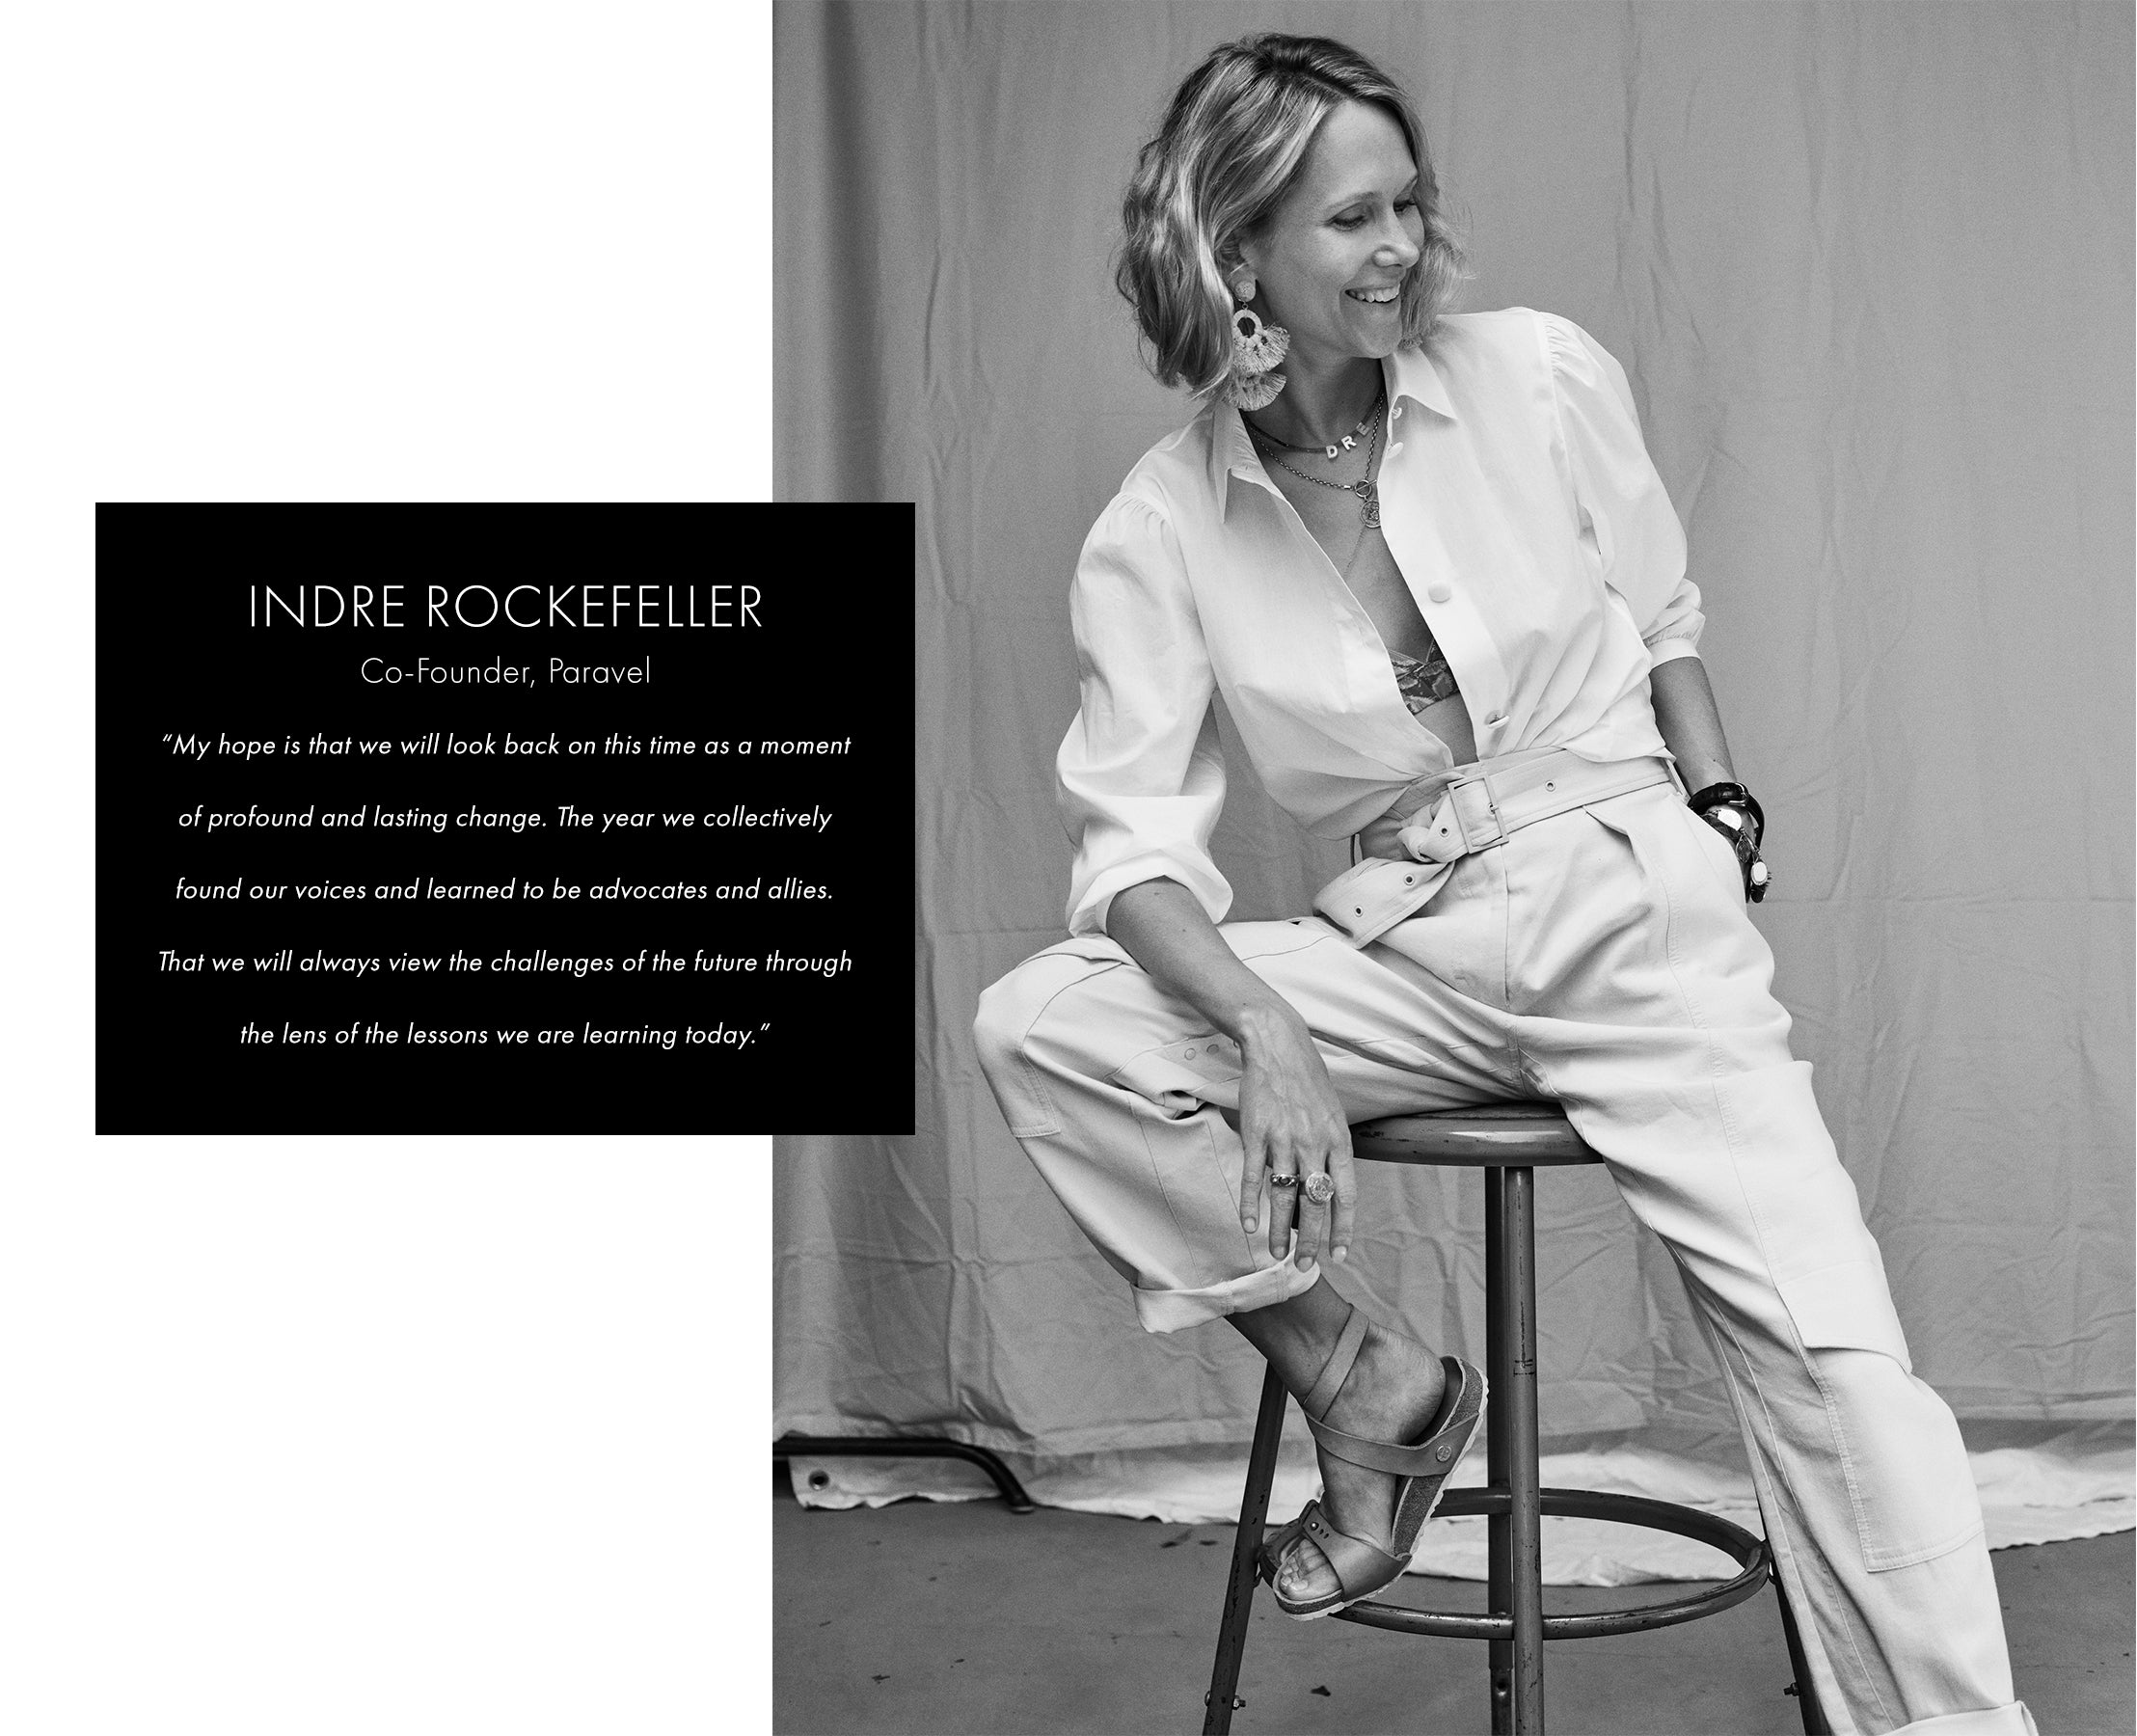 Indre Rockefeller sitting in white button down and trousers on stool